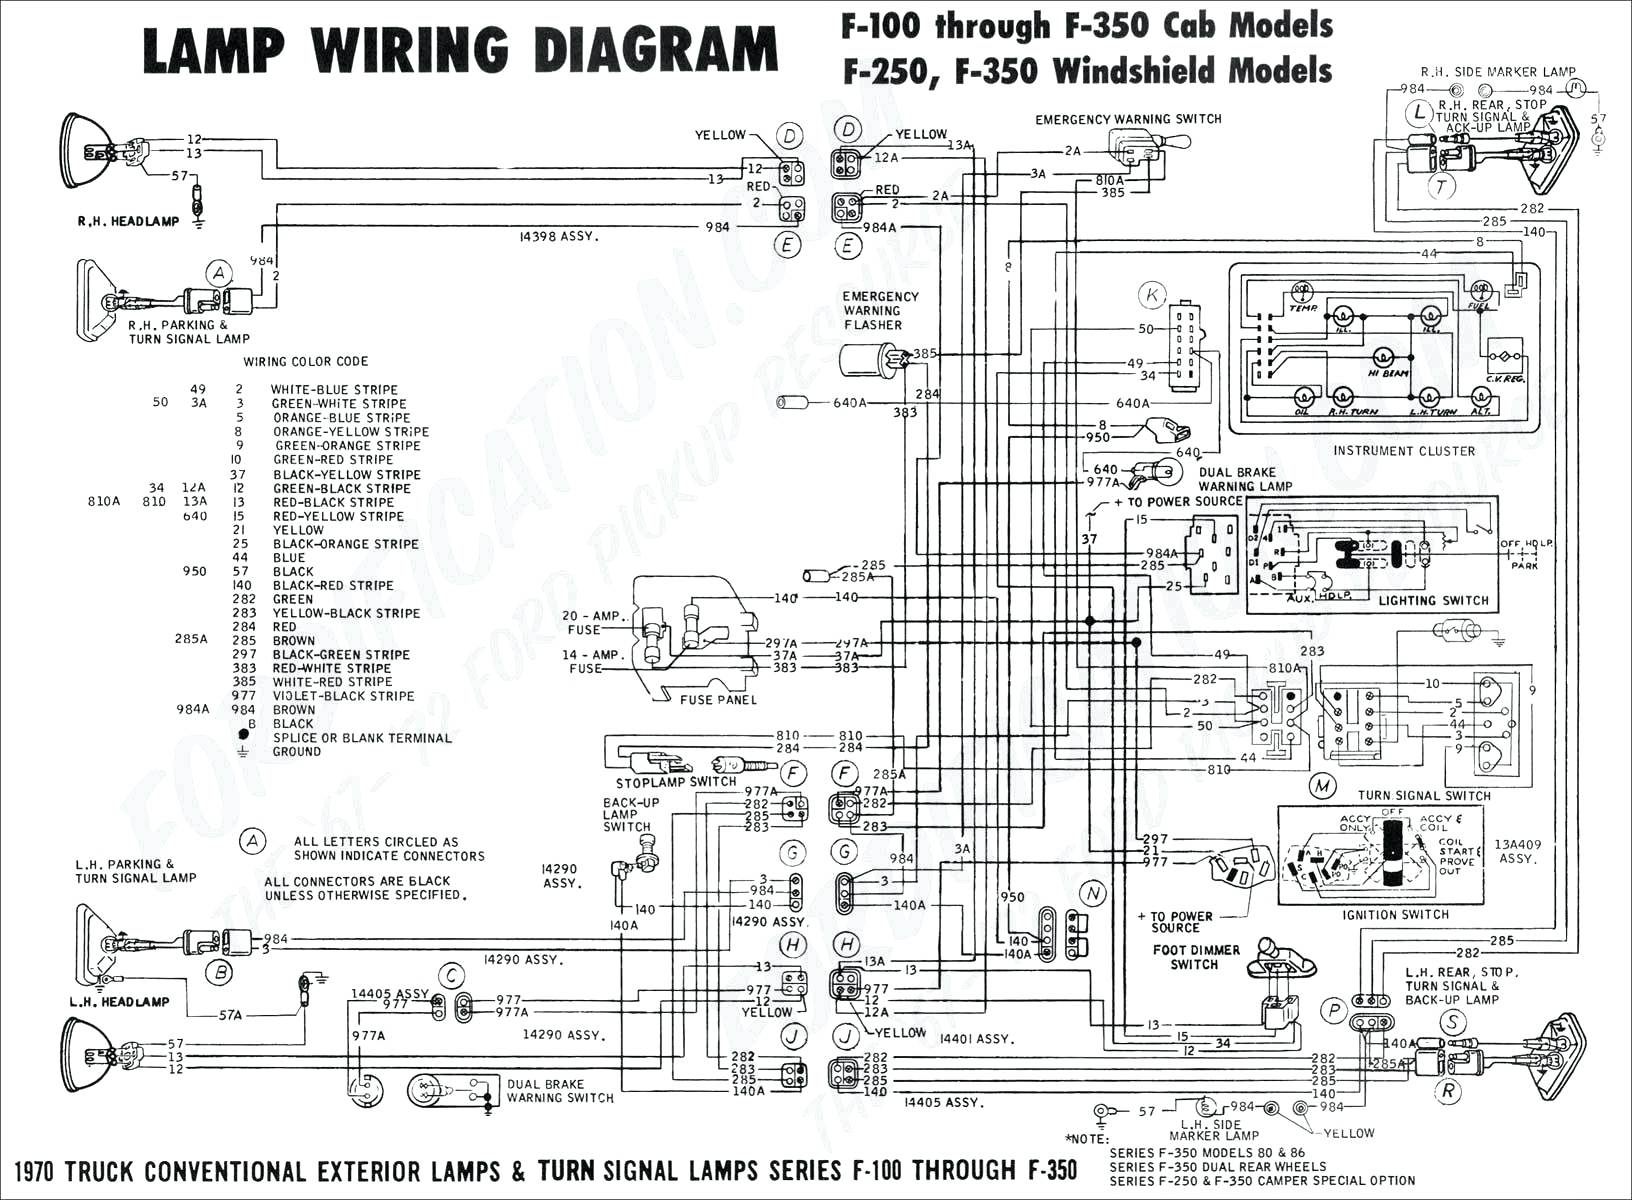 [DIAGRAM] Ac Wiring Diagram 1991 Chevrolet C1500 FULL